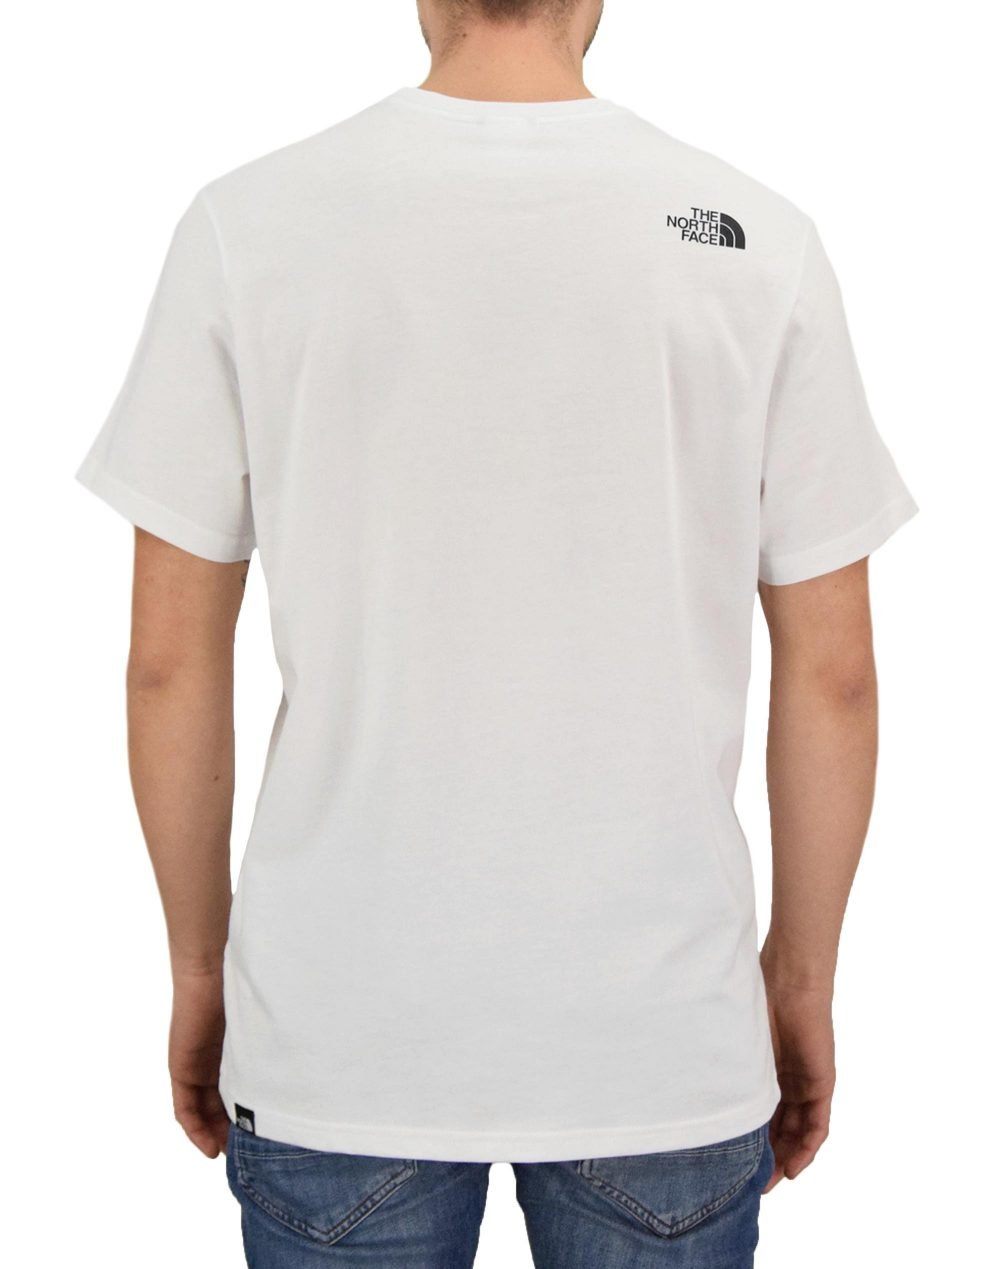 The North Face Standard Tee (NF0A4M7XFN41) White